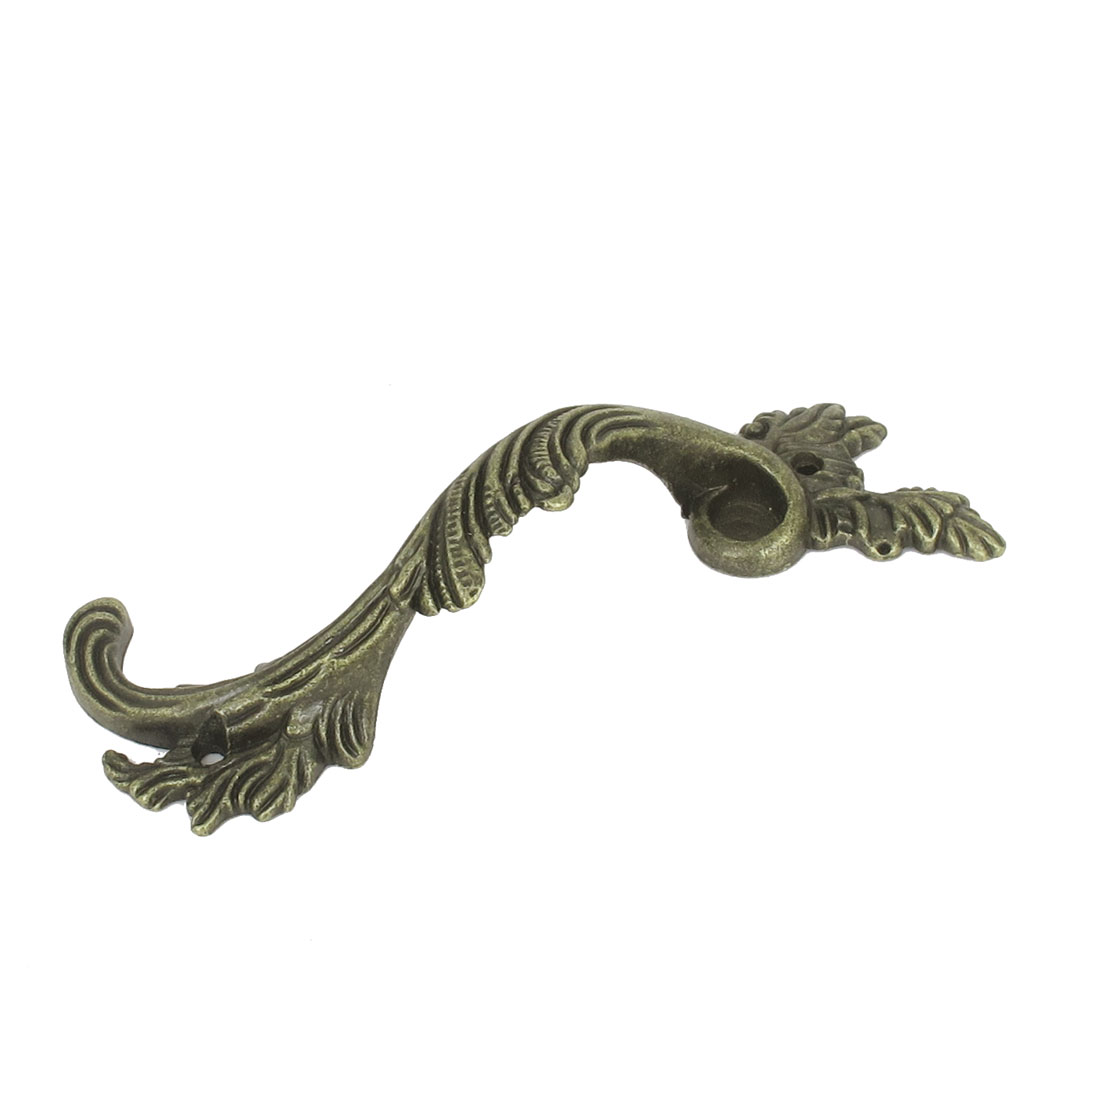 128mm Metal Retro Style Embossed Arch Knob Cabinet Door Pull Handle Hardware